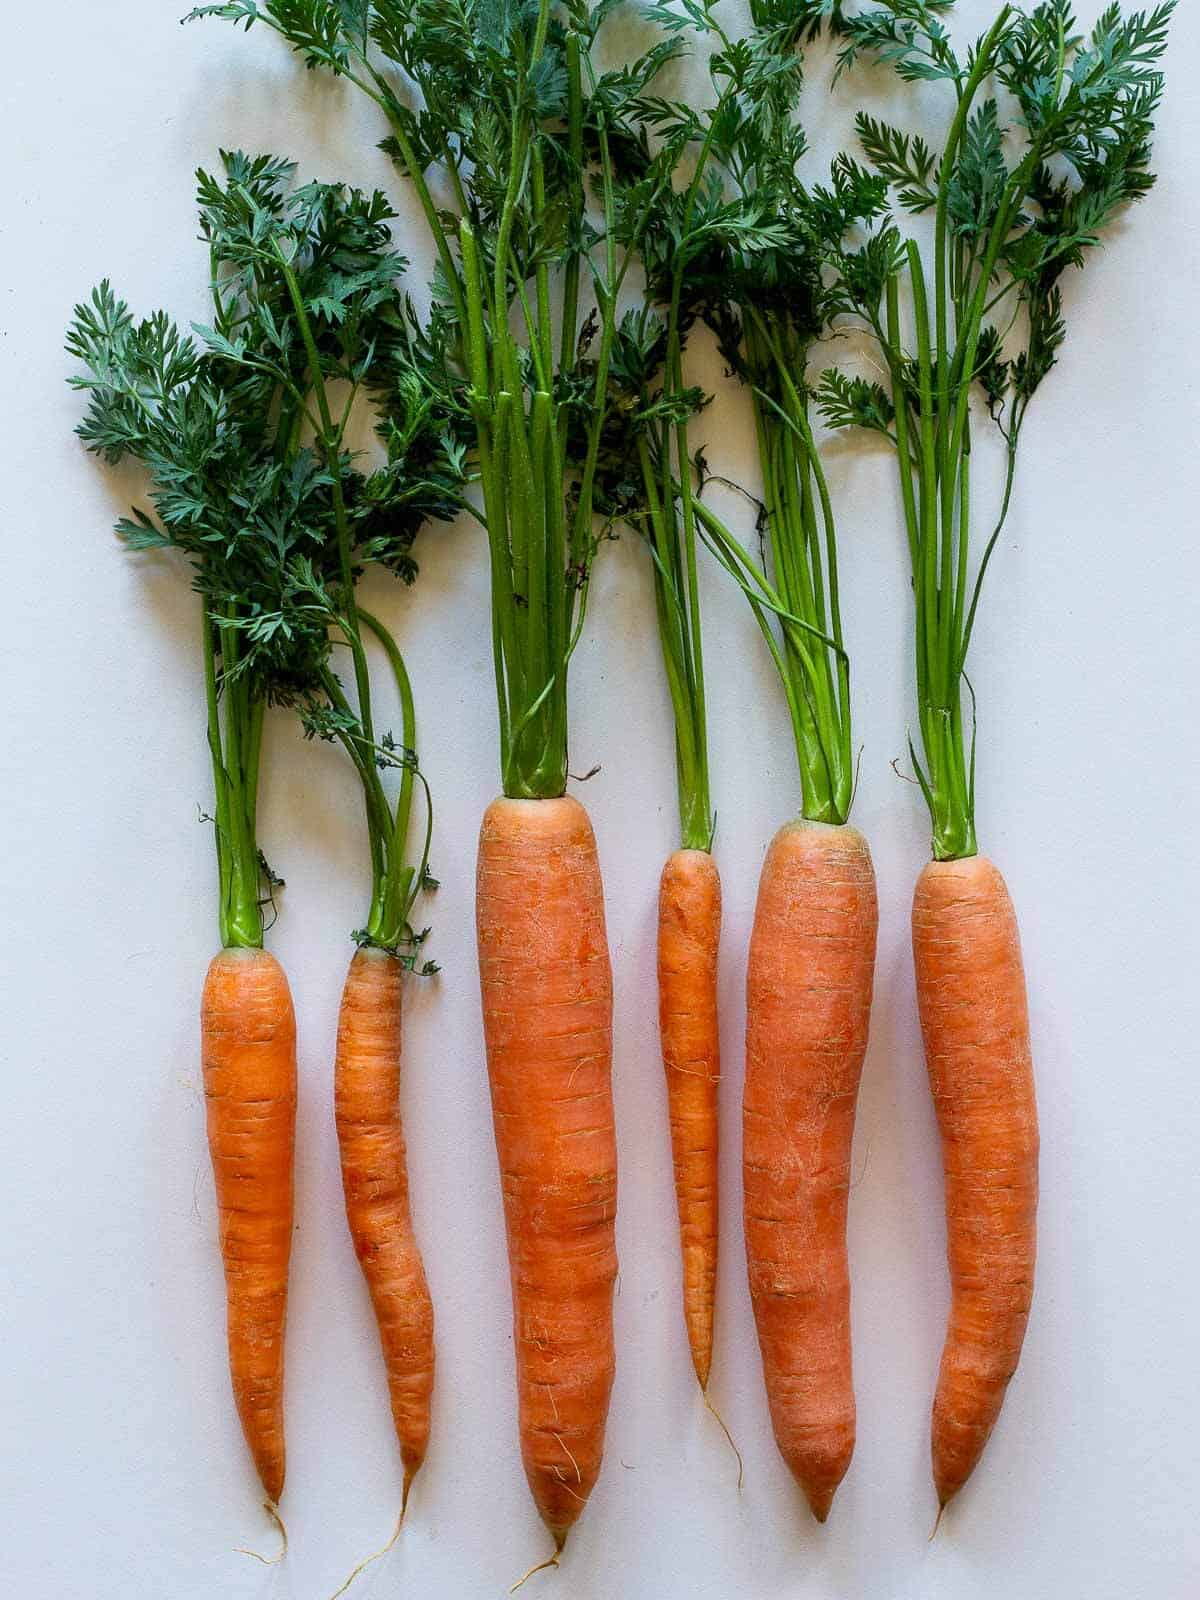 carrots white background